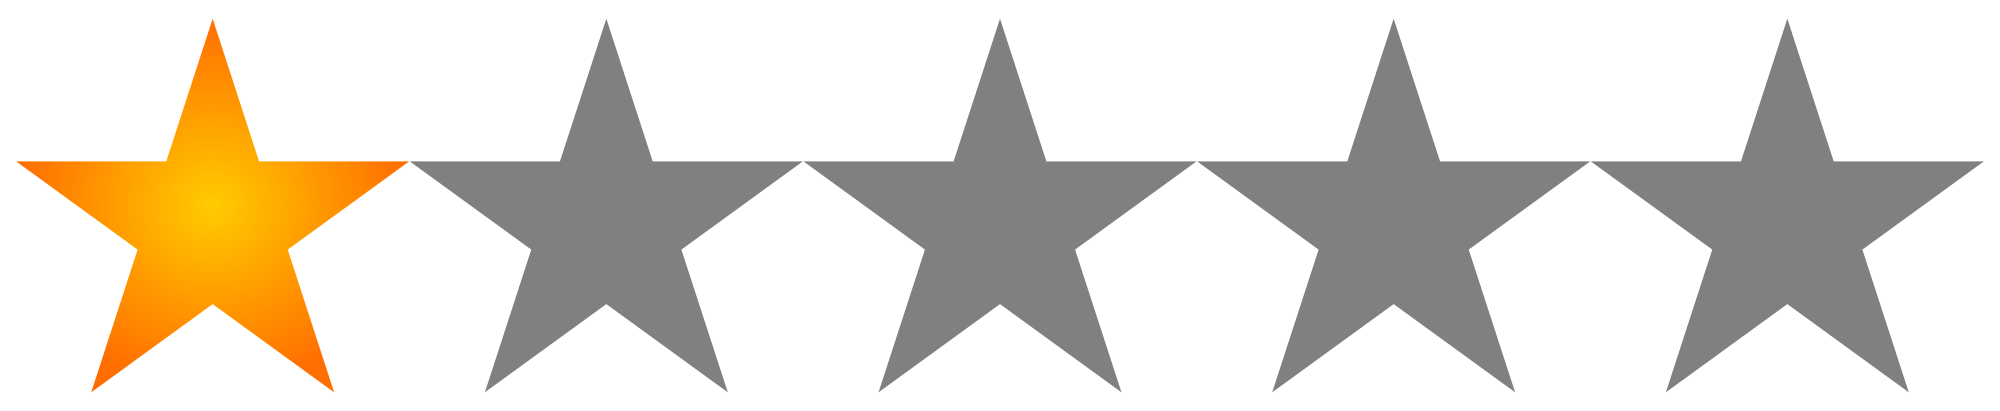 svg star eastern